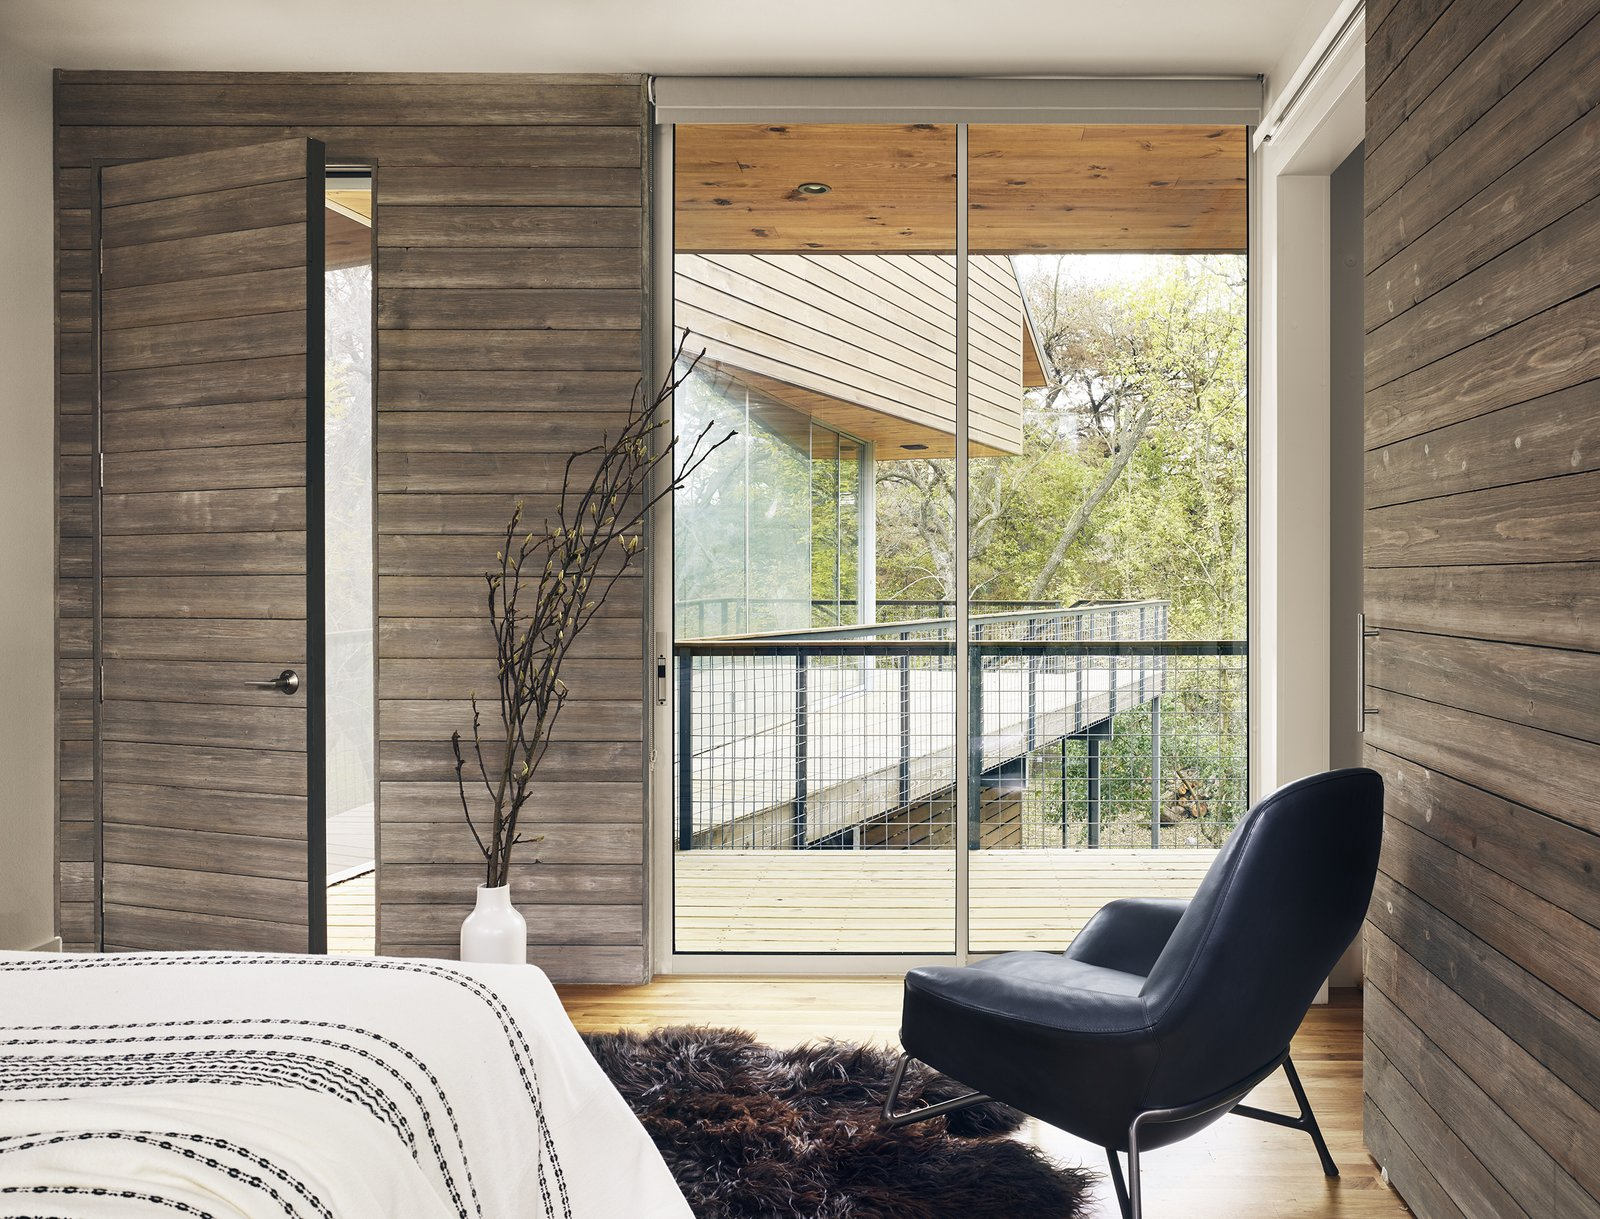 Bedroom, Recessed Lighting, Medium Hardwood Floor, Rug Floor, Bed, Ceiling Lighting, Wall Lighting, and Chair View of bedroom and outdoor porch by Low Design Office  Guadalupe River House